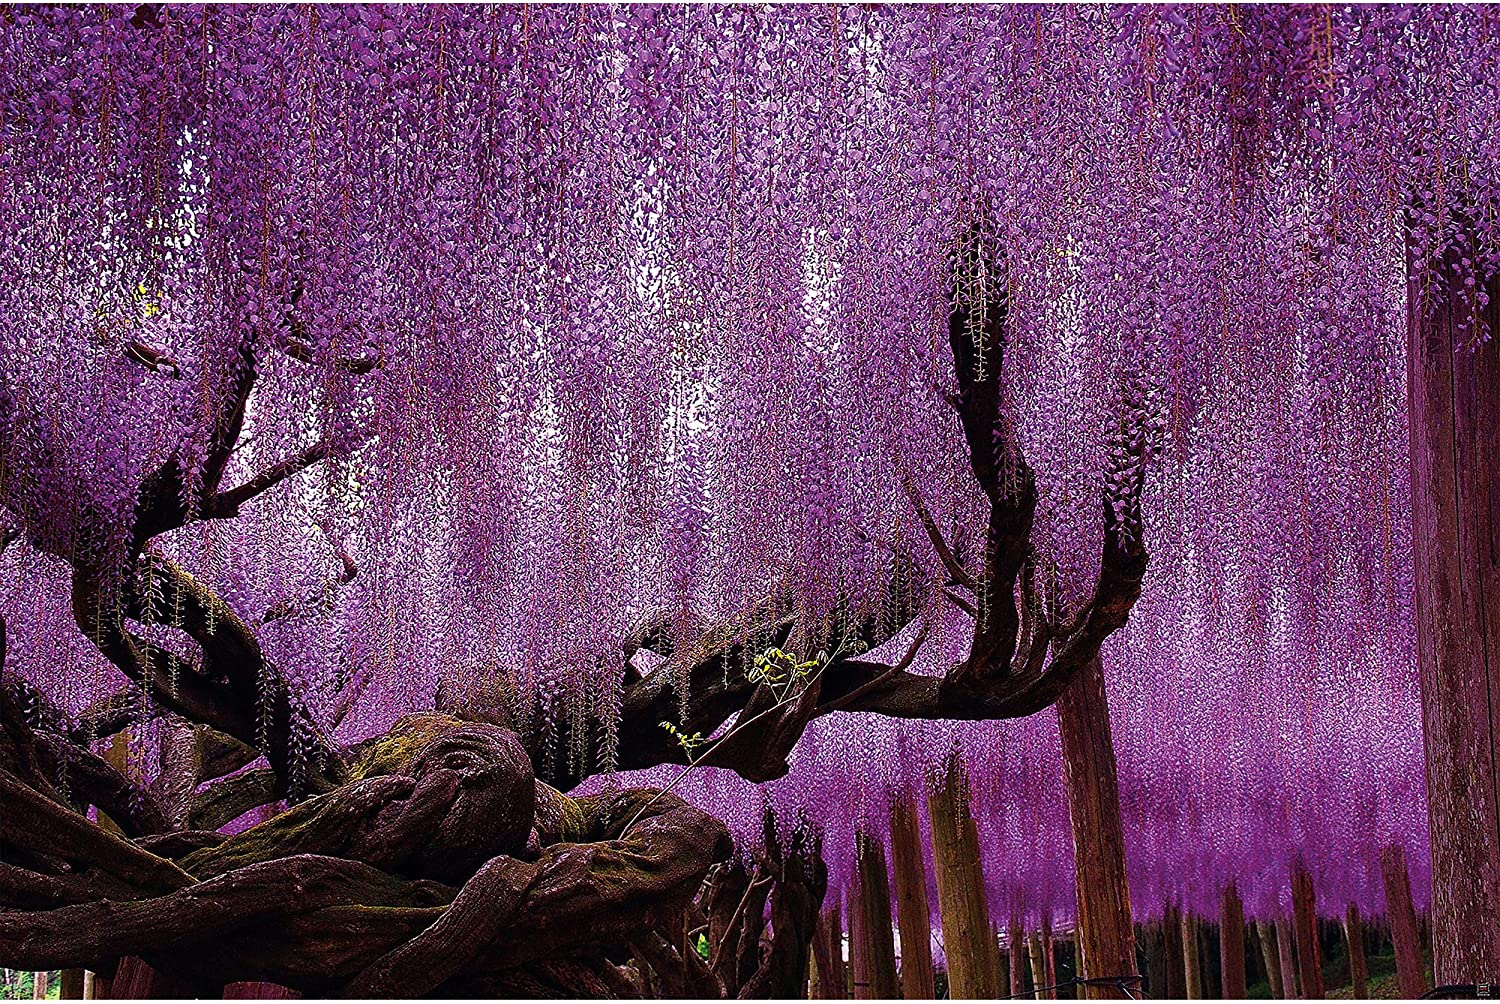 GREAT ART Poster - Wisteria - Purple Wisteria Violet Flowers Landscape Forest Nature Flowers Motif Wisaria Blossom Flowers Garden Decoration Wall Picture Din A2 (42 x 59,4 cm / 16.5 x 23.4 in)